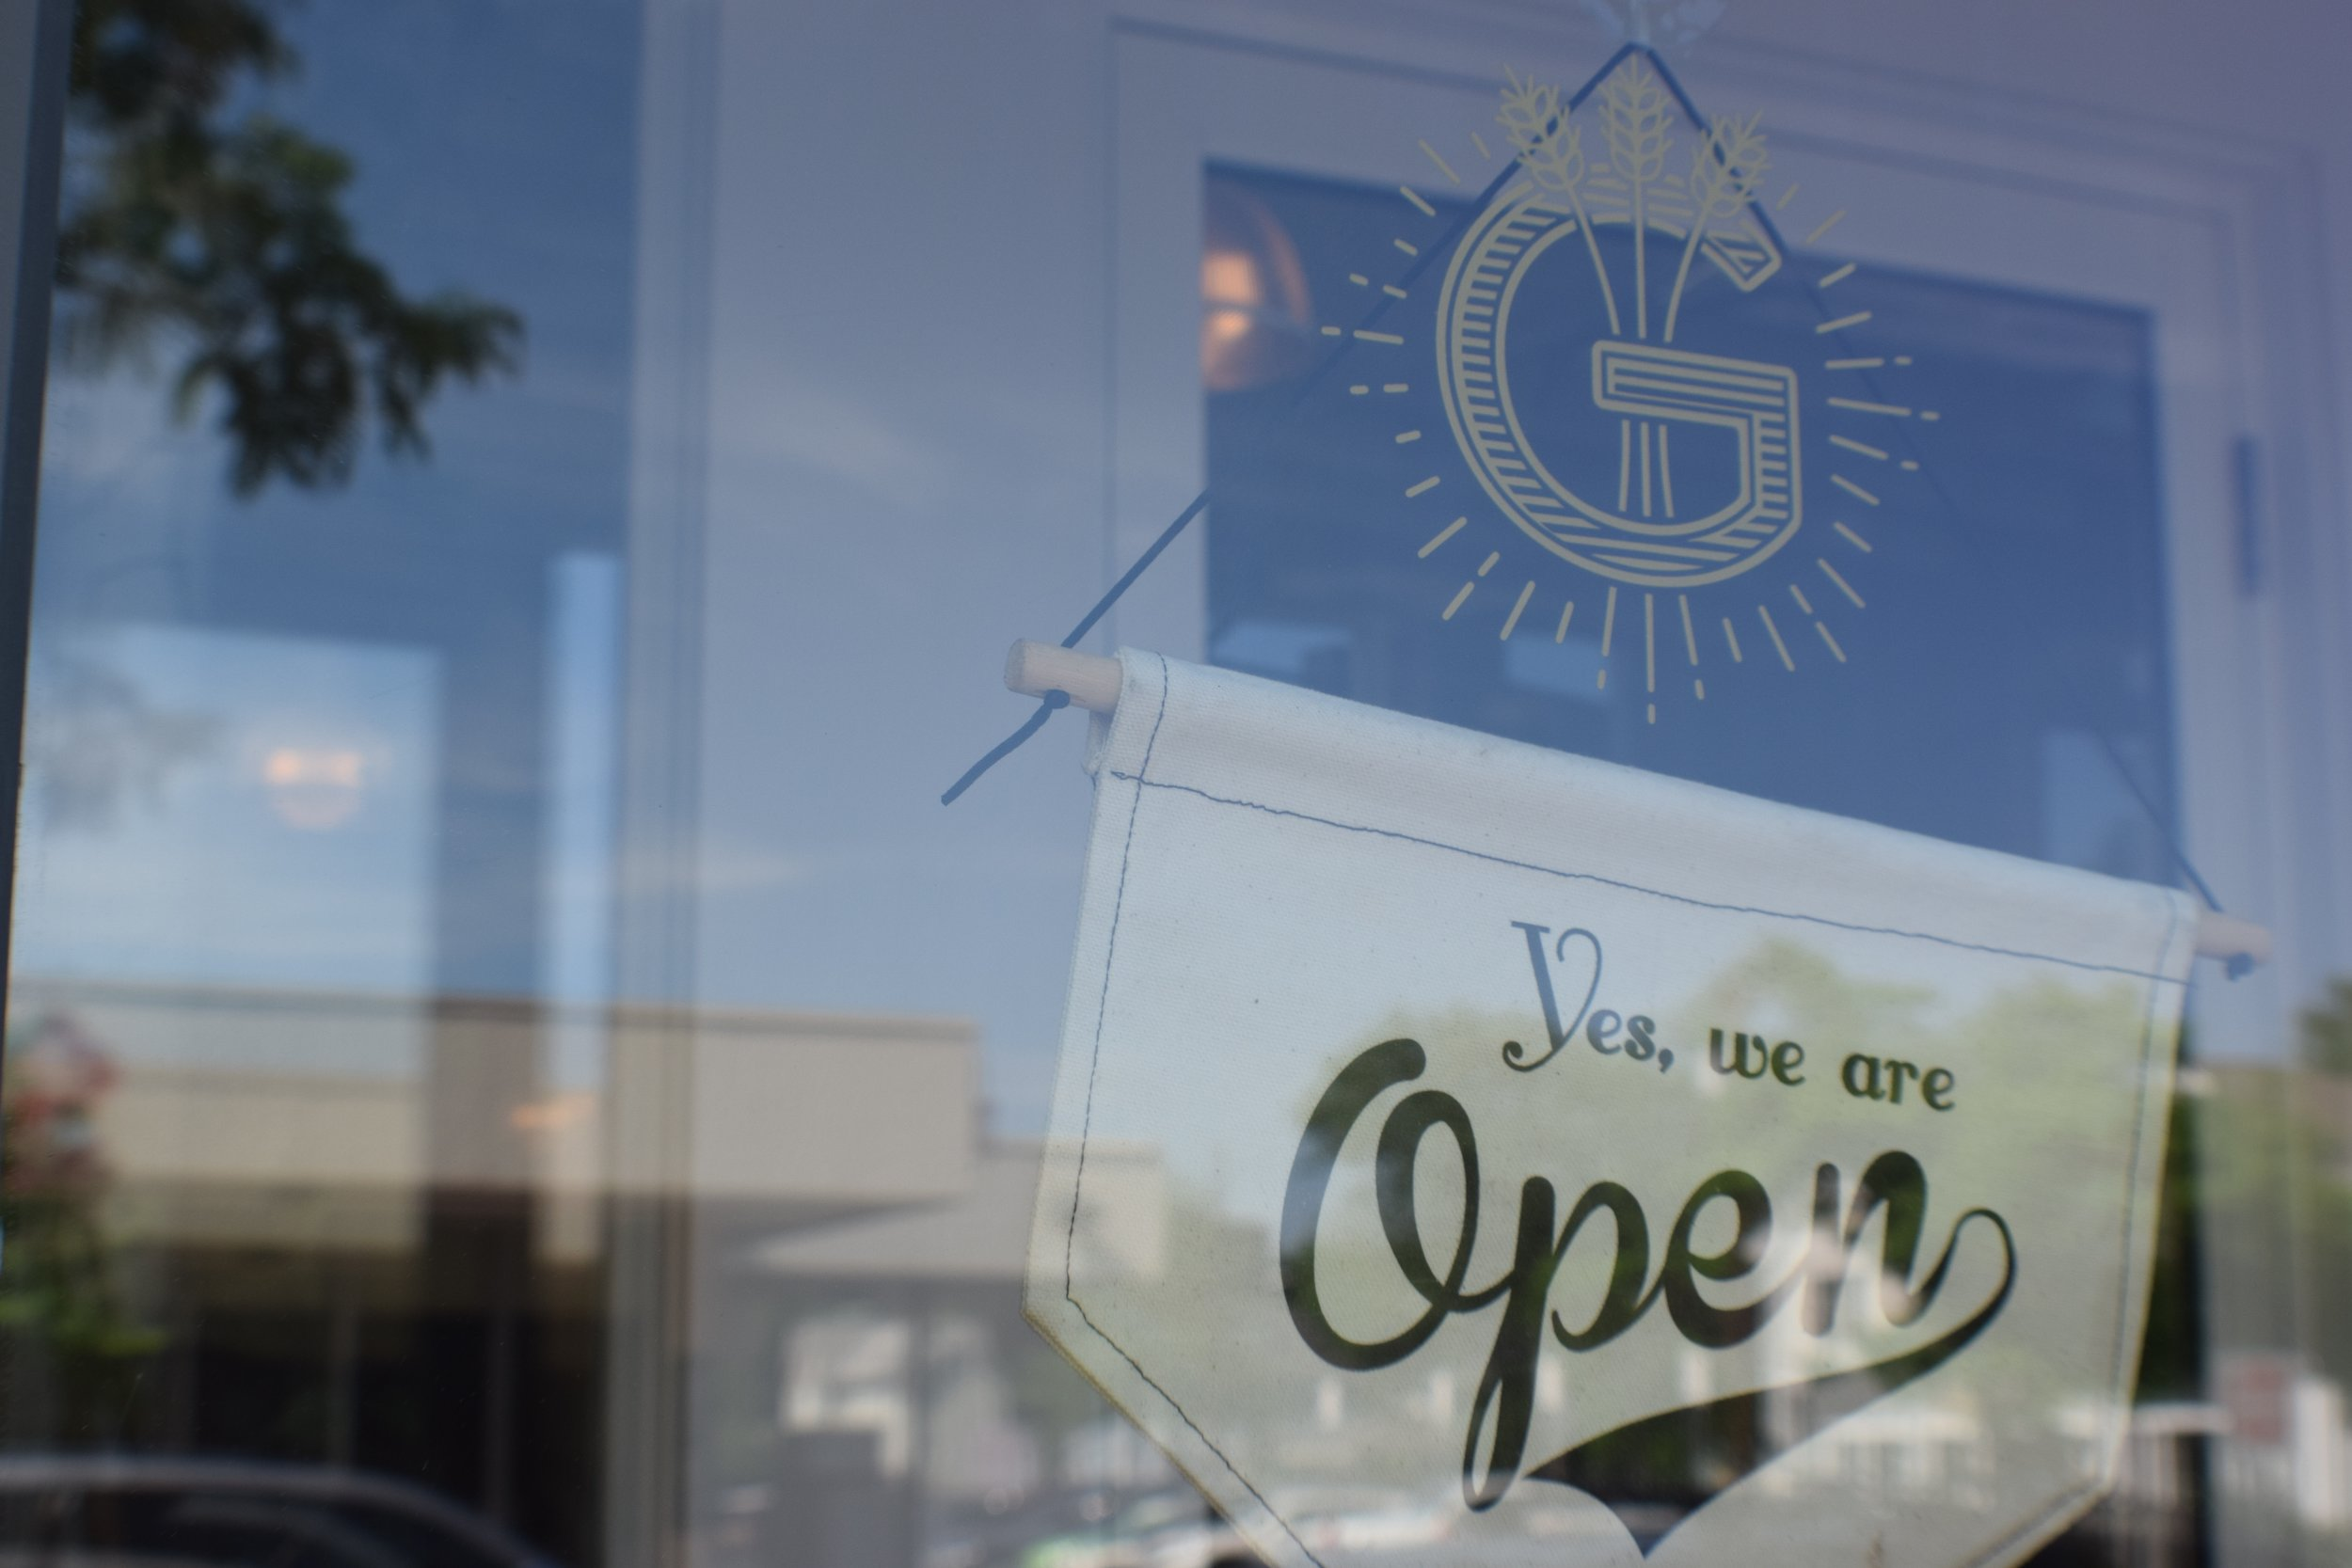 One of our favorite coffee spots in Buffalo? The Grange Community Kitchen